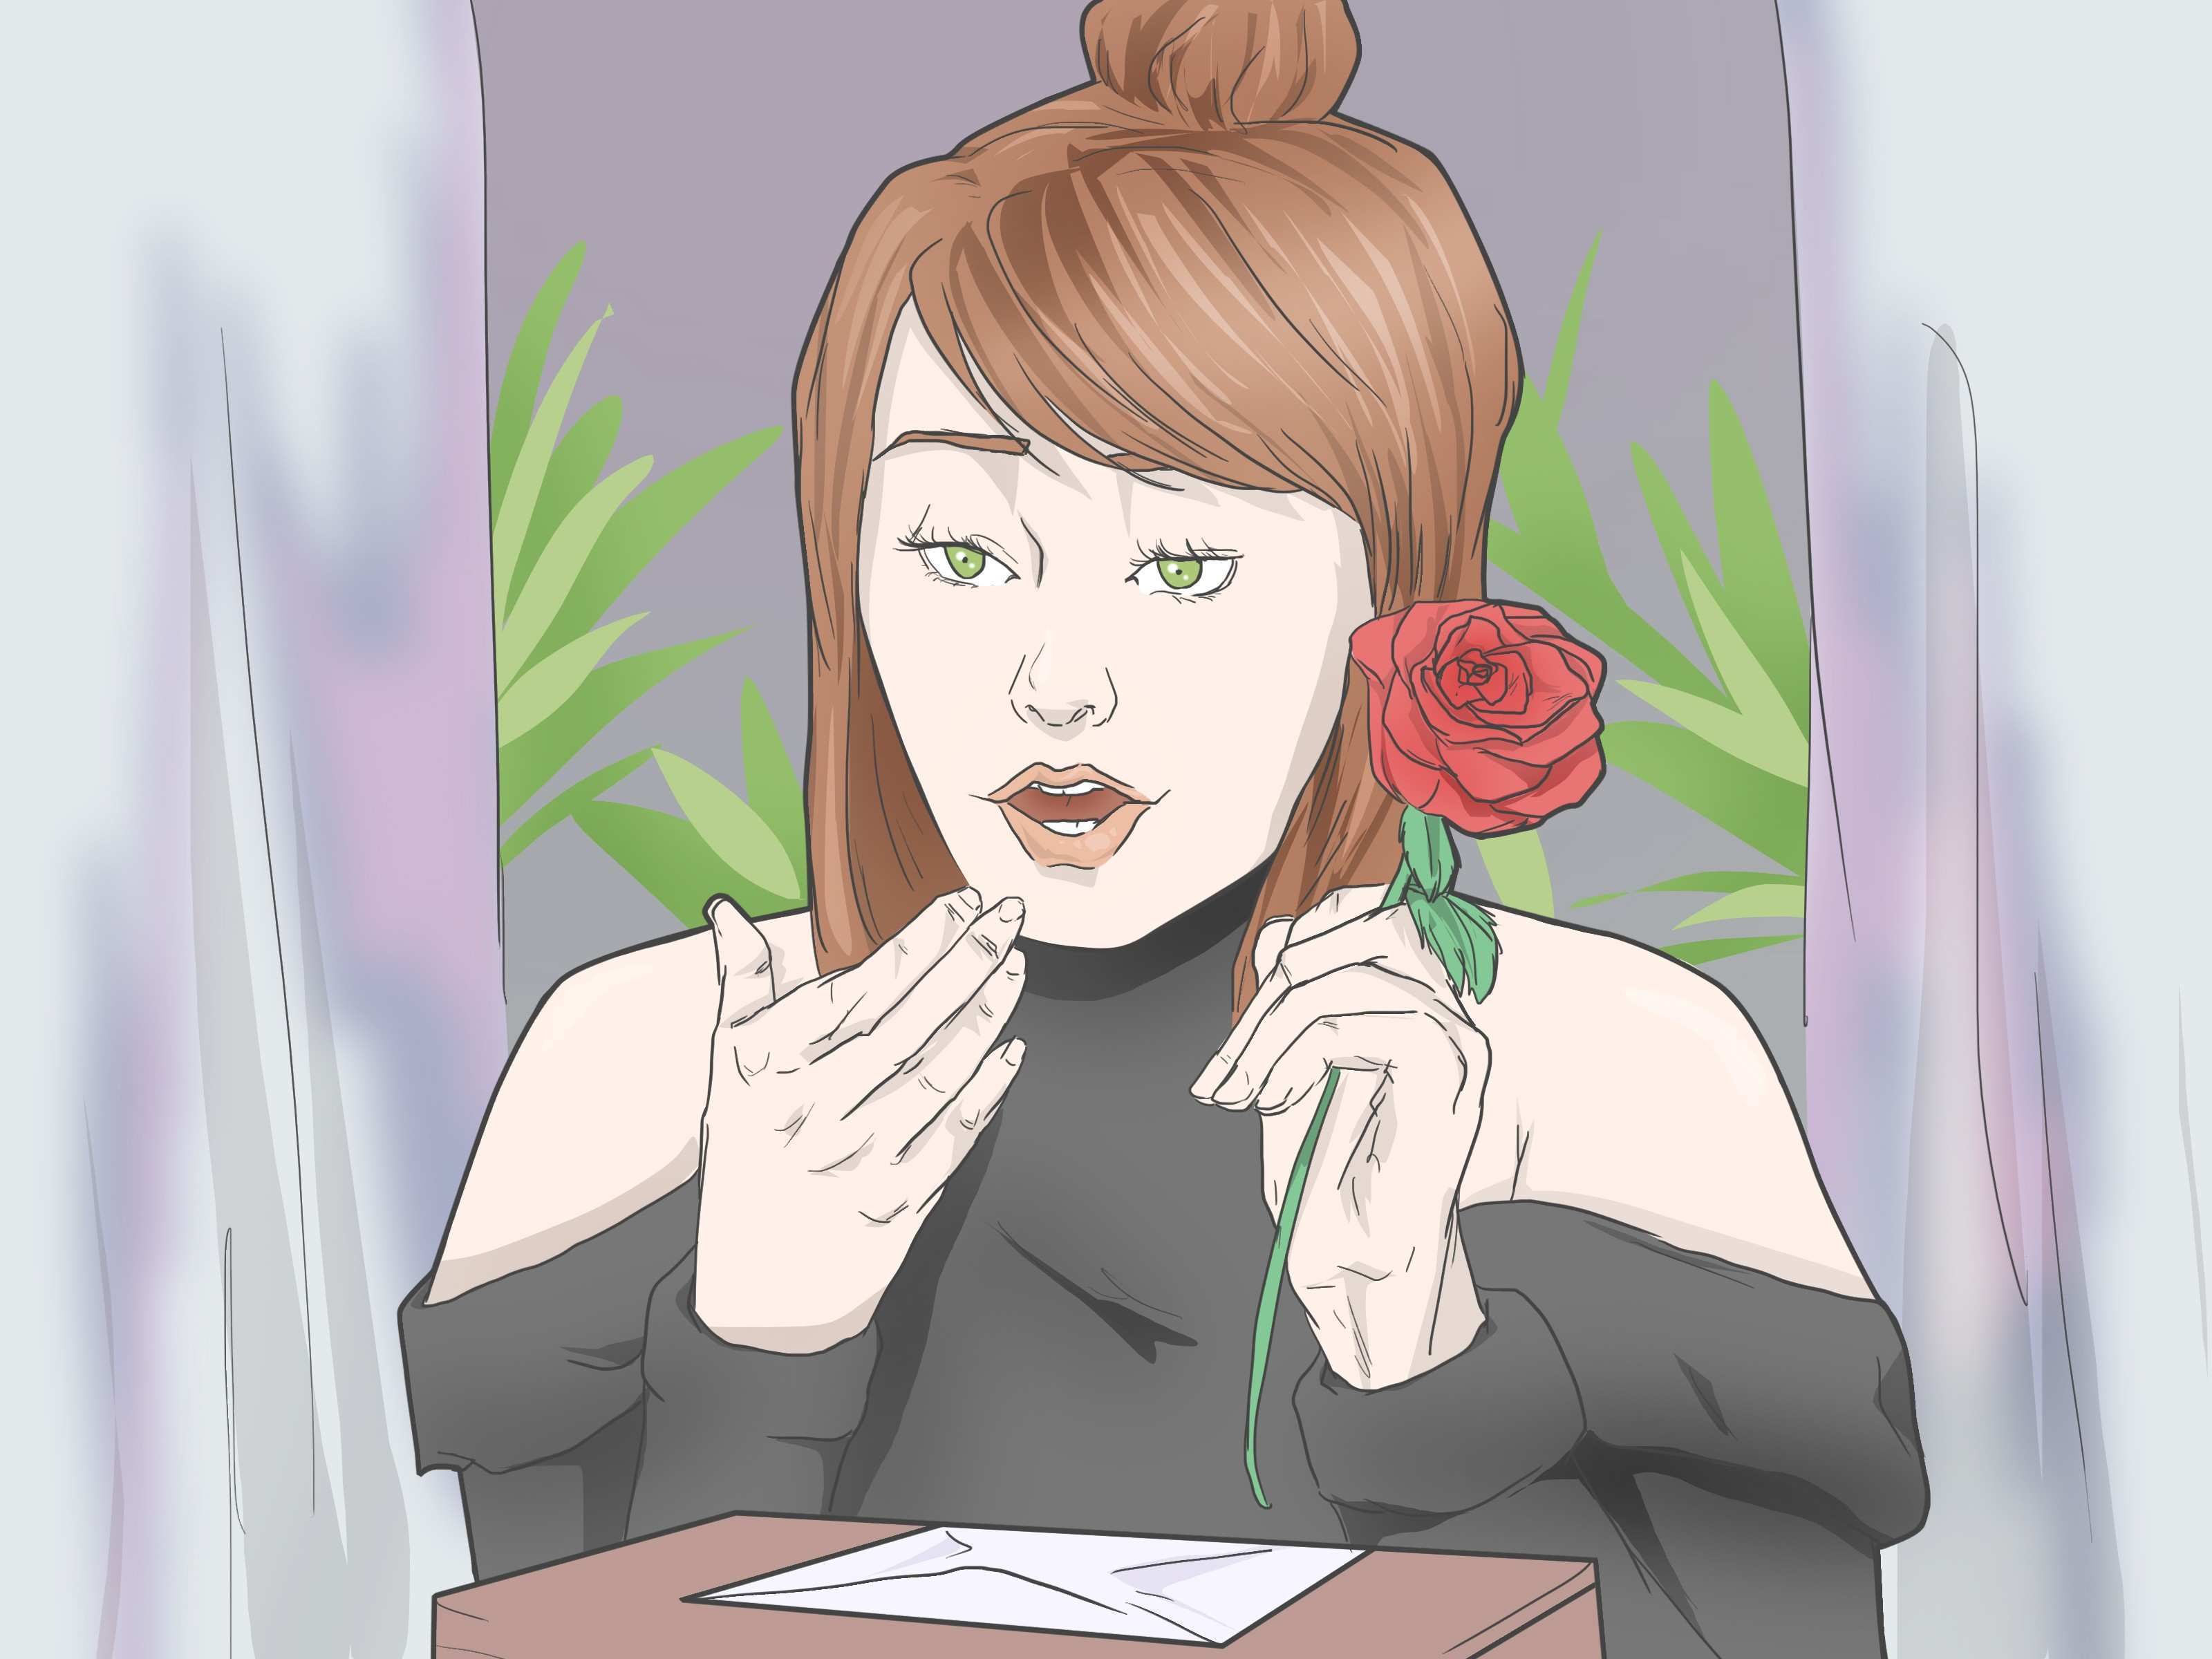 How to Find Romantic Arts and Crafts to Do To her 10 Steps